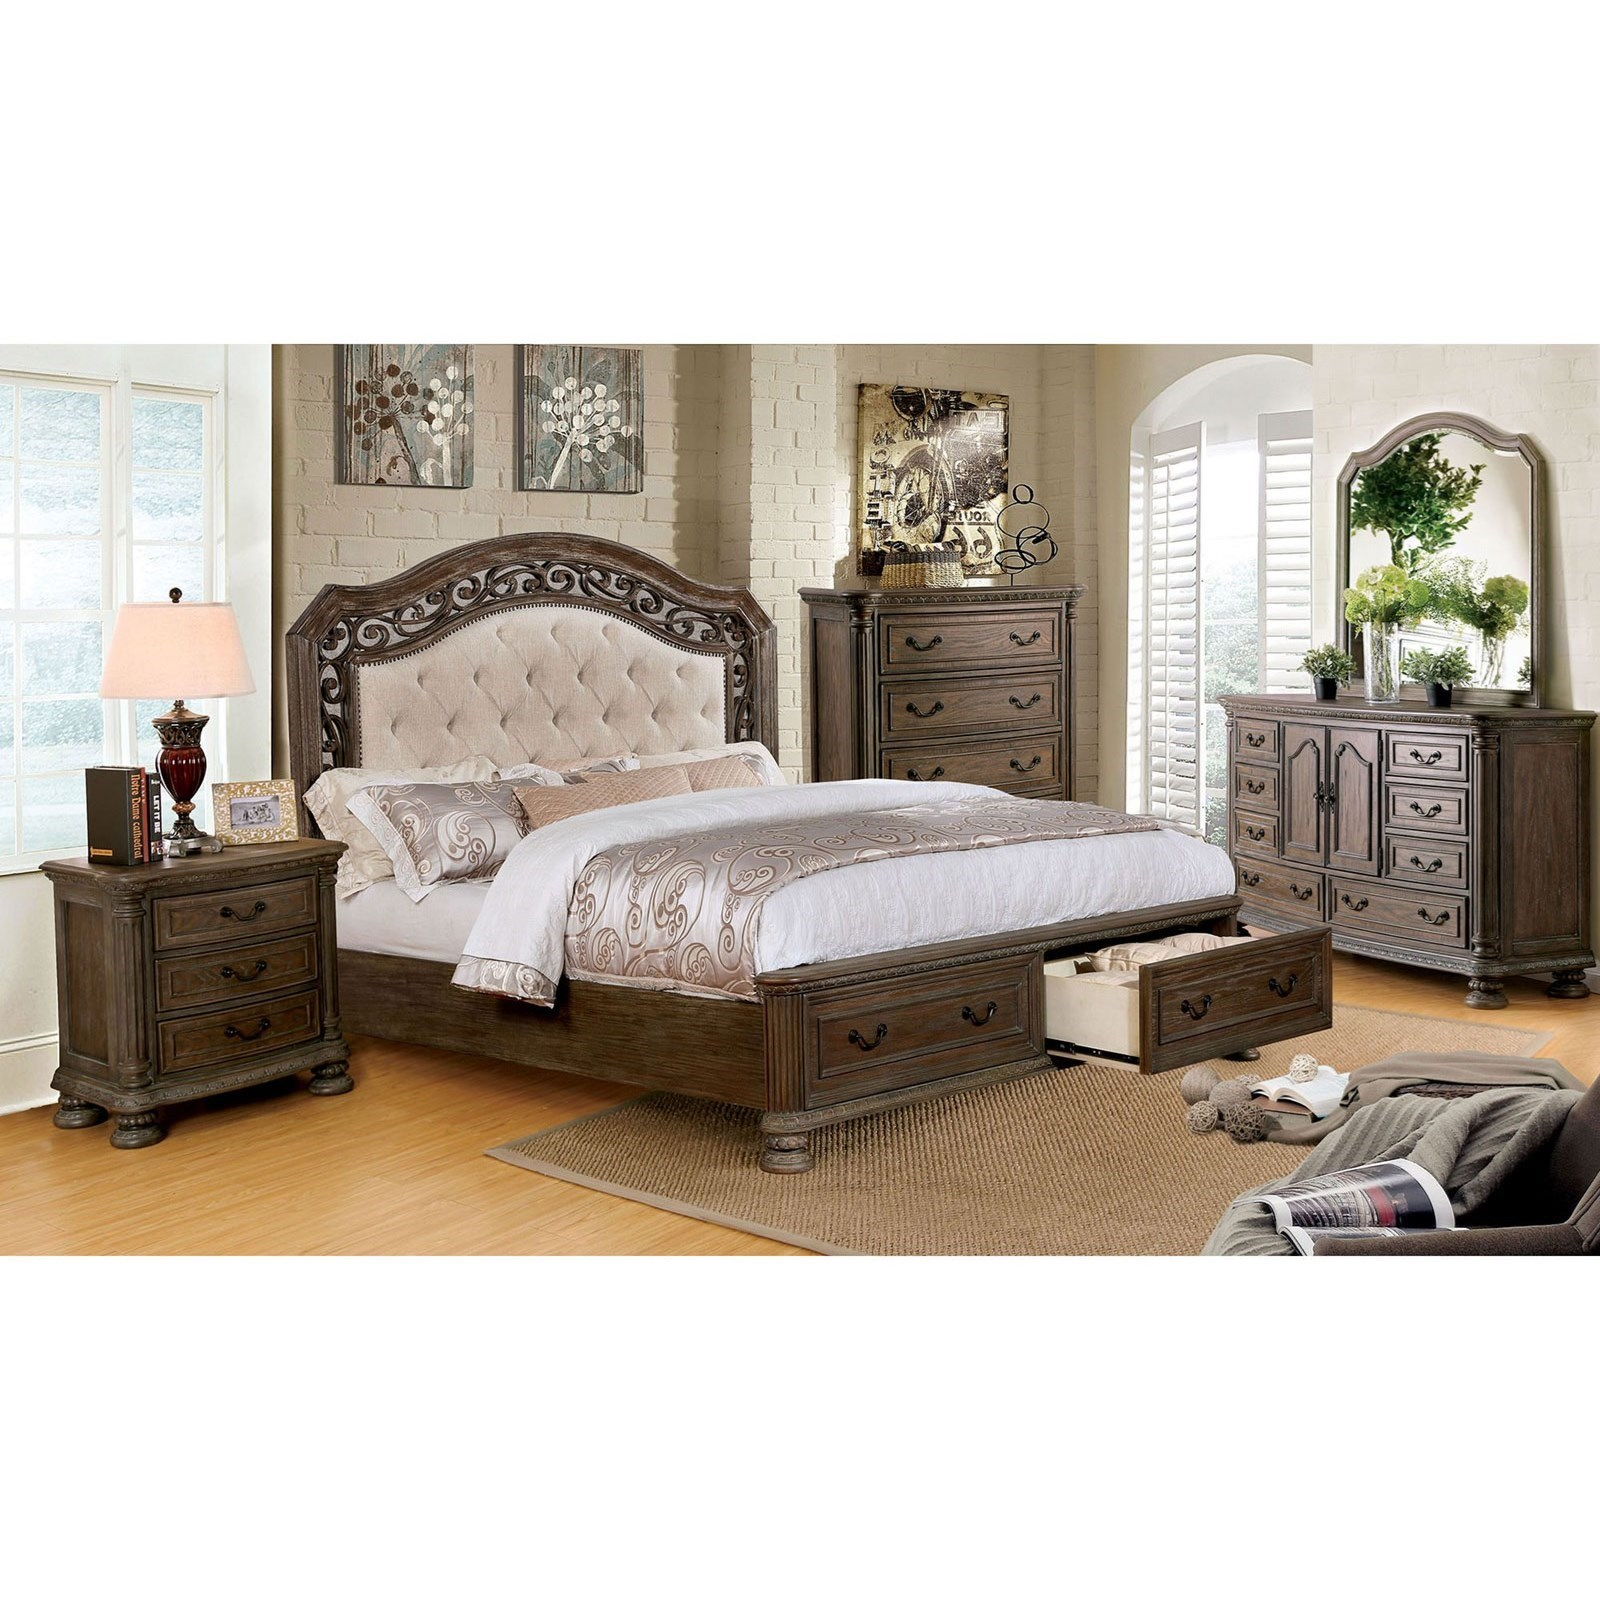 Persephone Queen Bedroom Group at Household Furniture